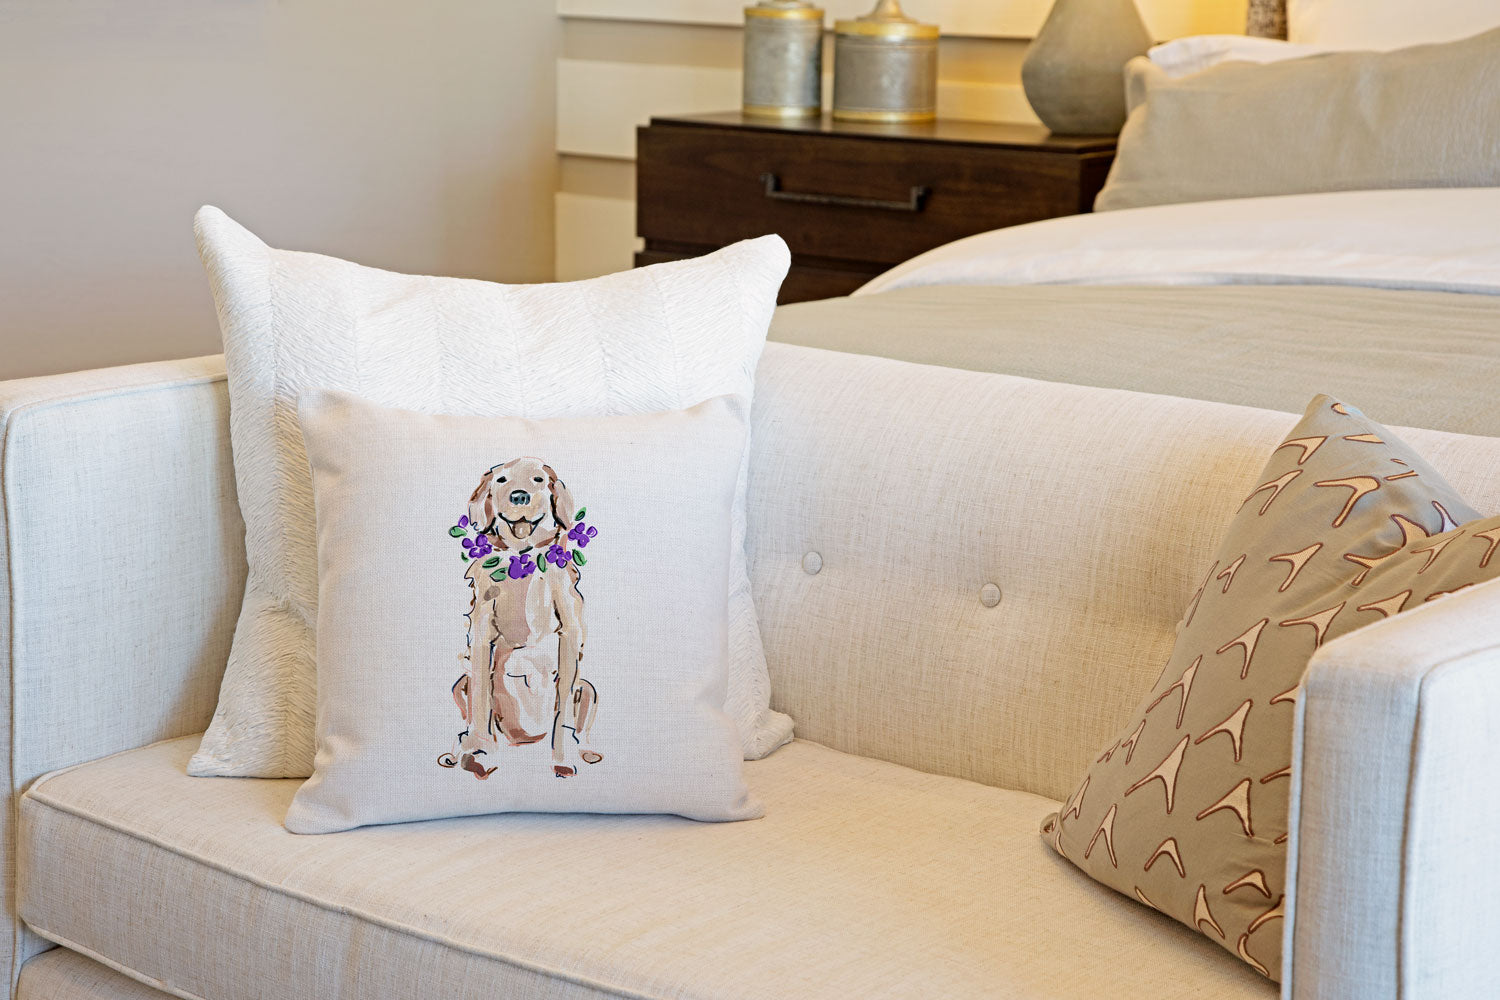 Goldie Retriever Throw Pillow Cover - Dog Illustration Throw Pillow Cover Collection-Di Lewis